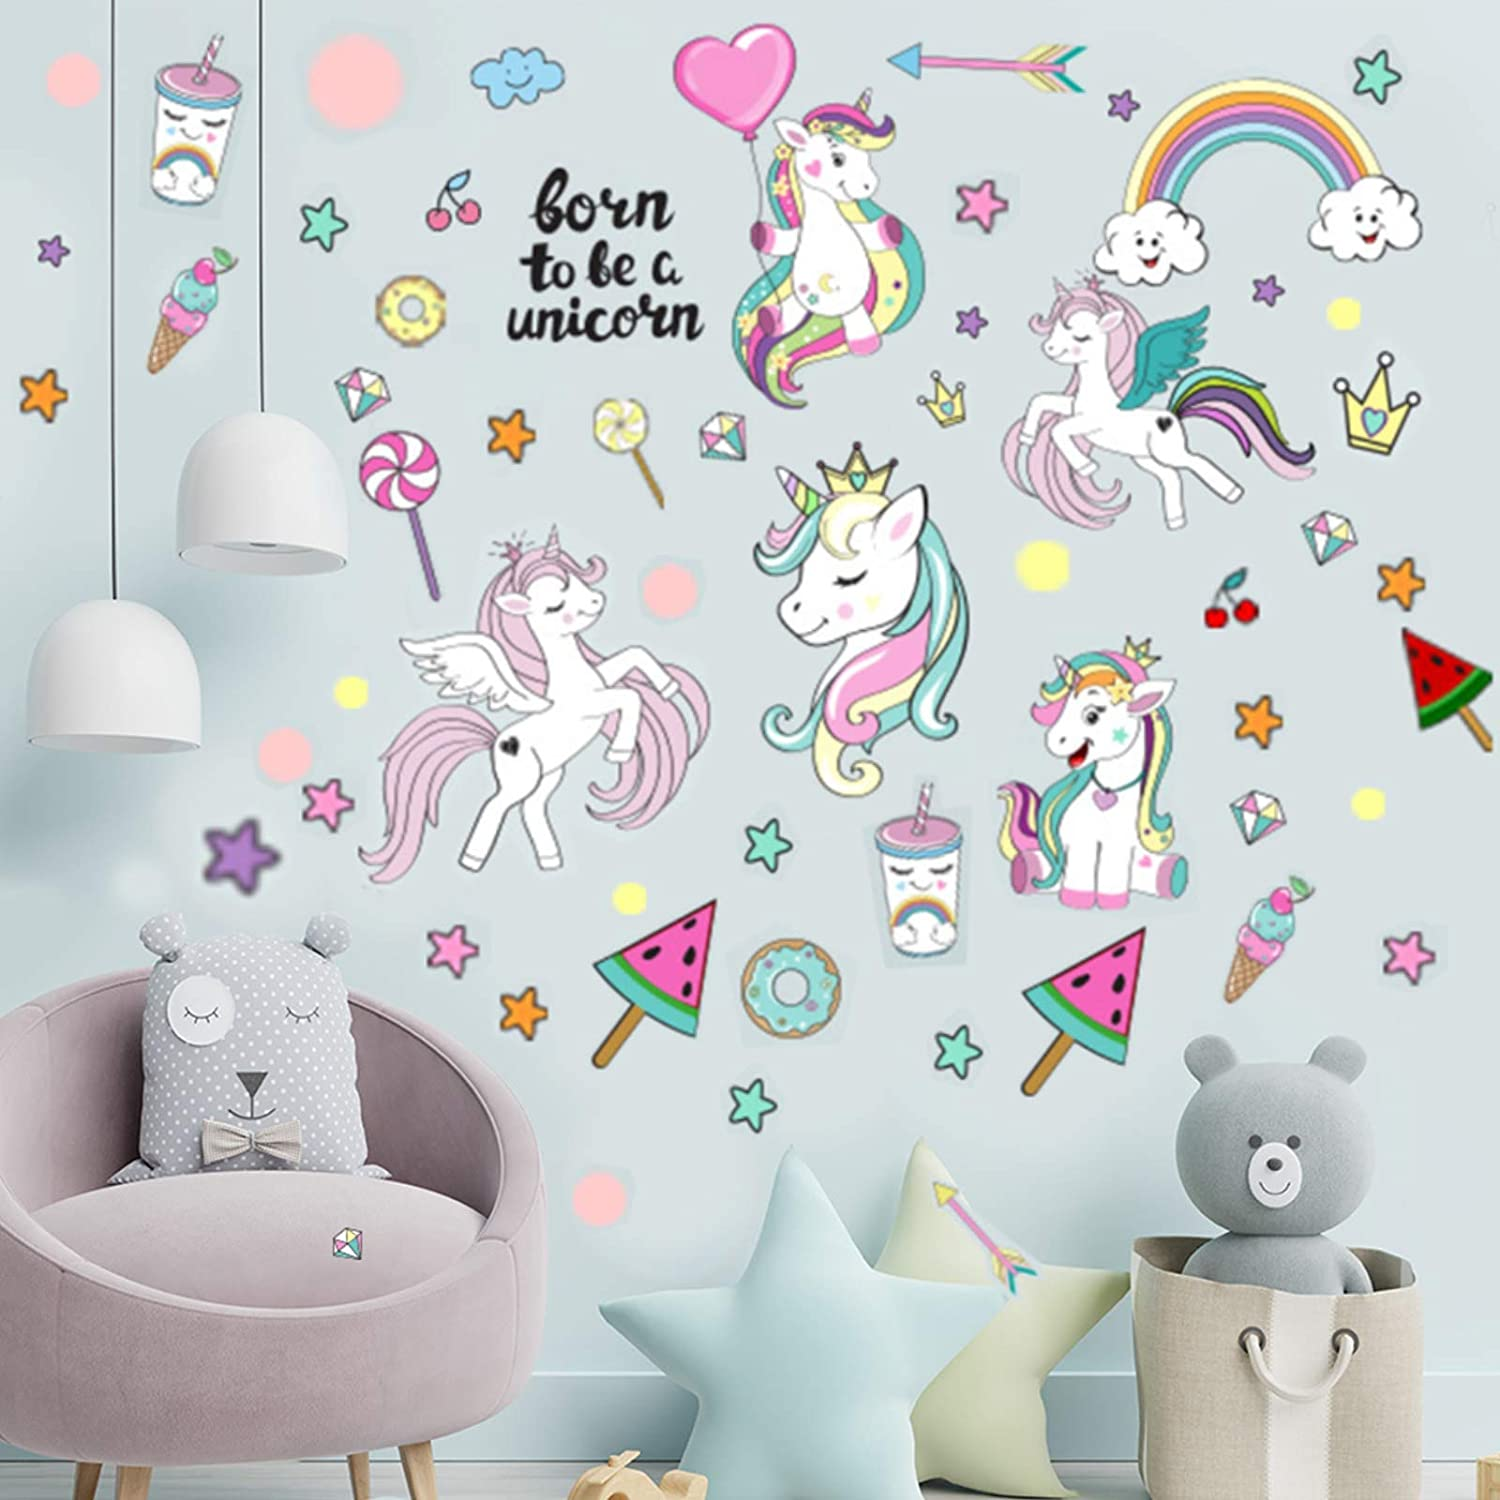 Unicorn Wall Stickers for Girls Bedroom, 4 Sheets Unicorn Wall Decals Removable Kids Wall Décor with Rainbow Stars Hearts for Teens Toddlers Bedroom Nursery Birthday Party Decoration, by WILLROAD